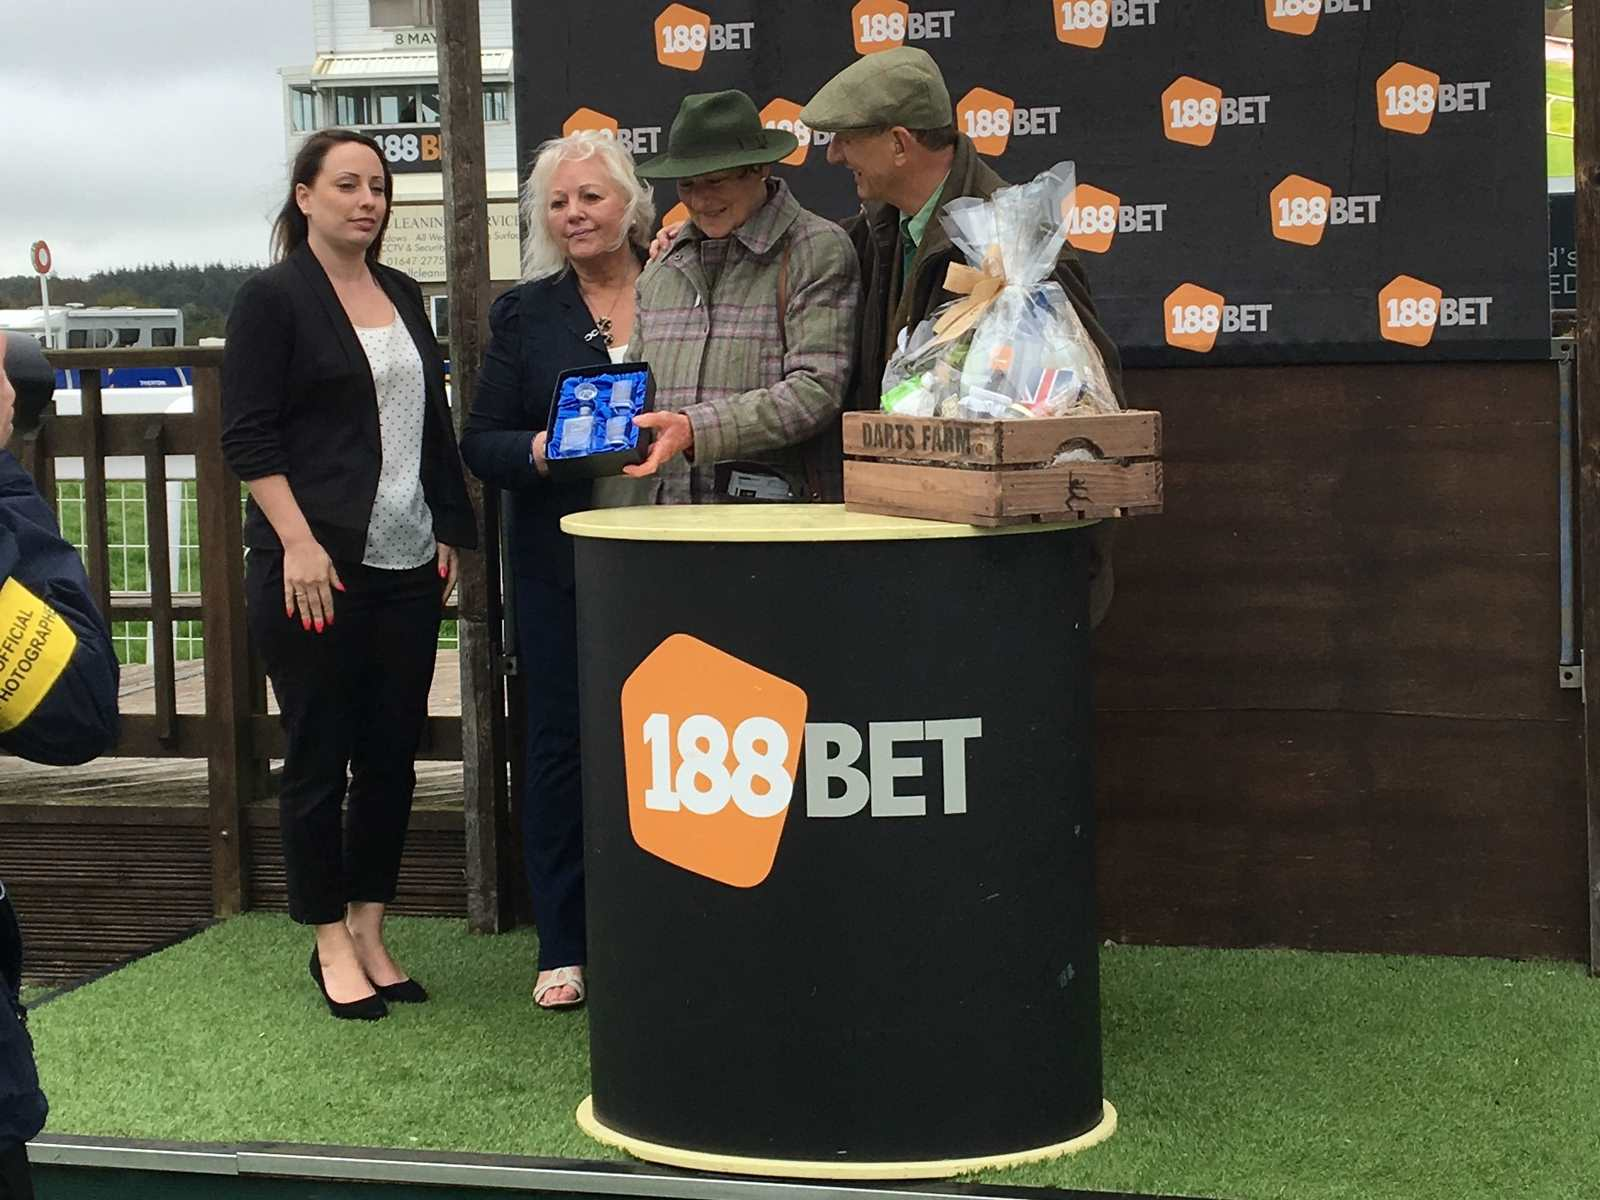 Neil & Jane Maltby collect the winning prizes at Exeter Racecourse